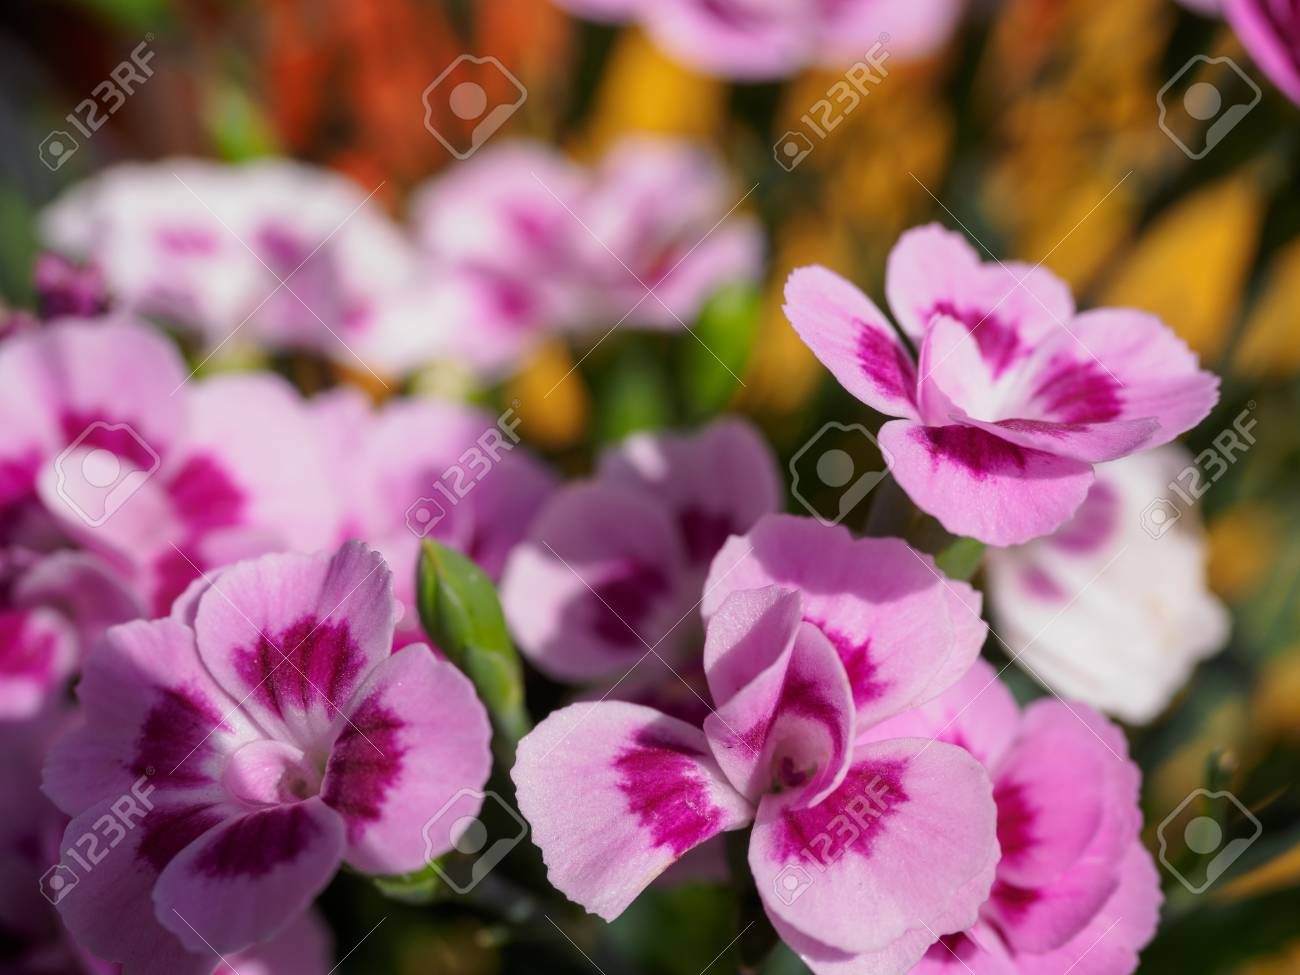 Pink pansy flowers with blur background in the garden stock photo pink pansy flowers with blur background in the garden stock photo 99710606 mightylinksfo Choice Image